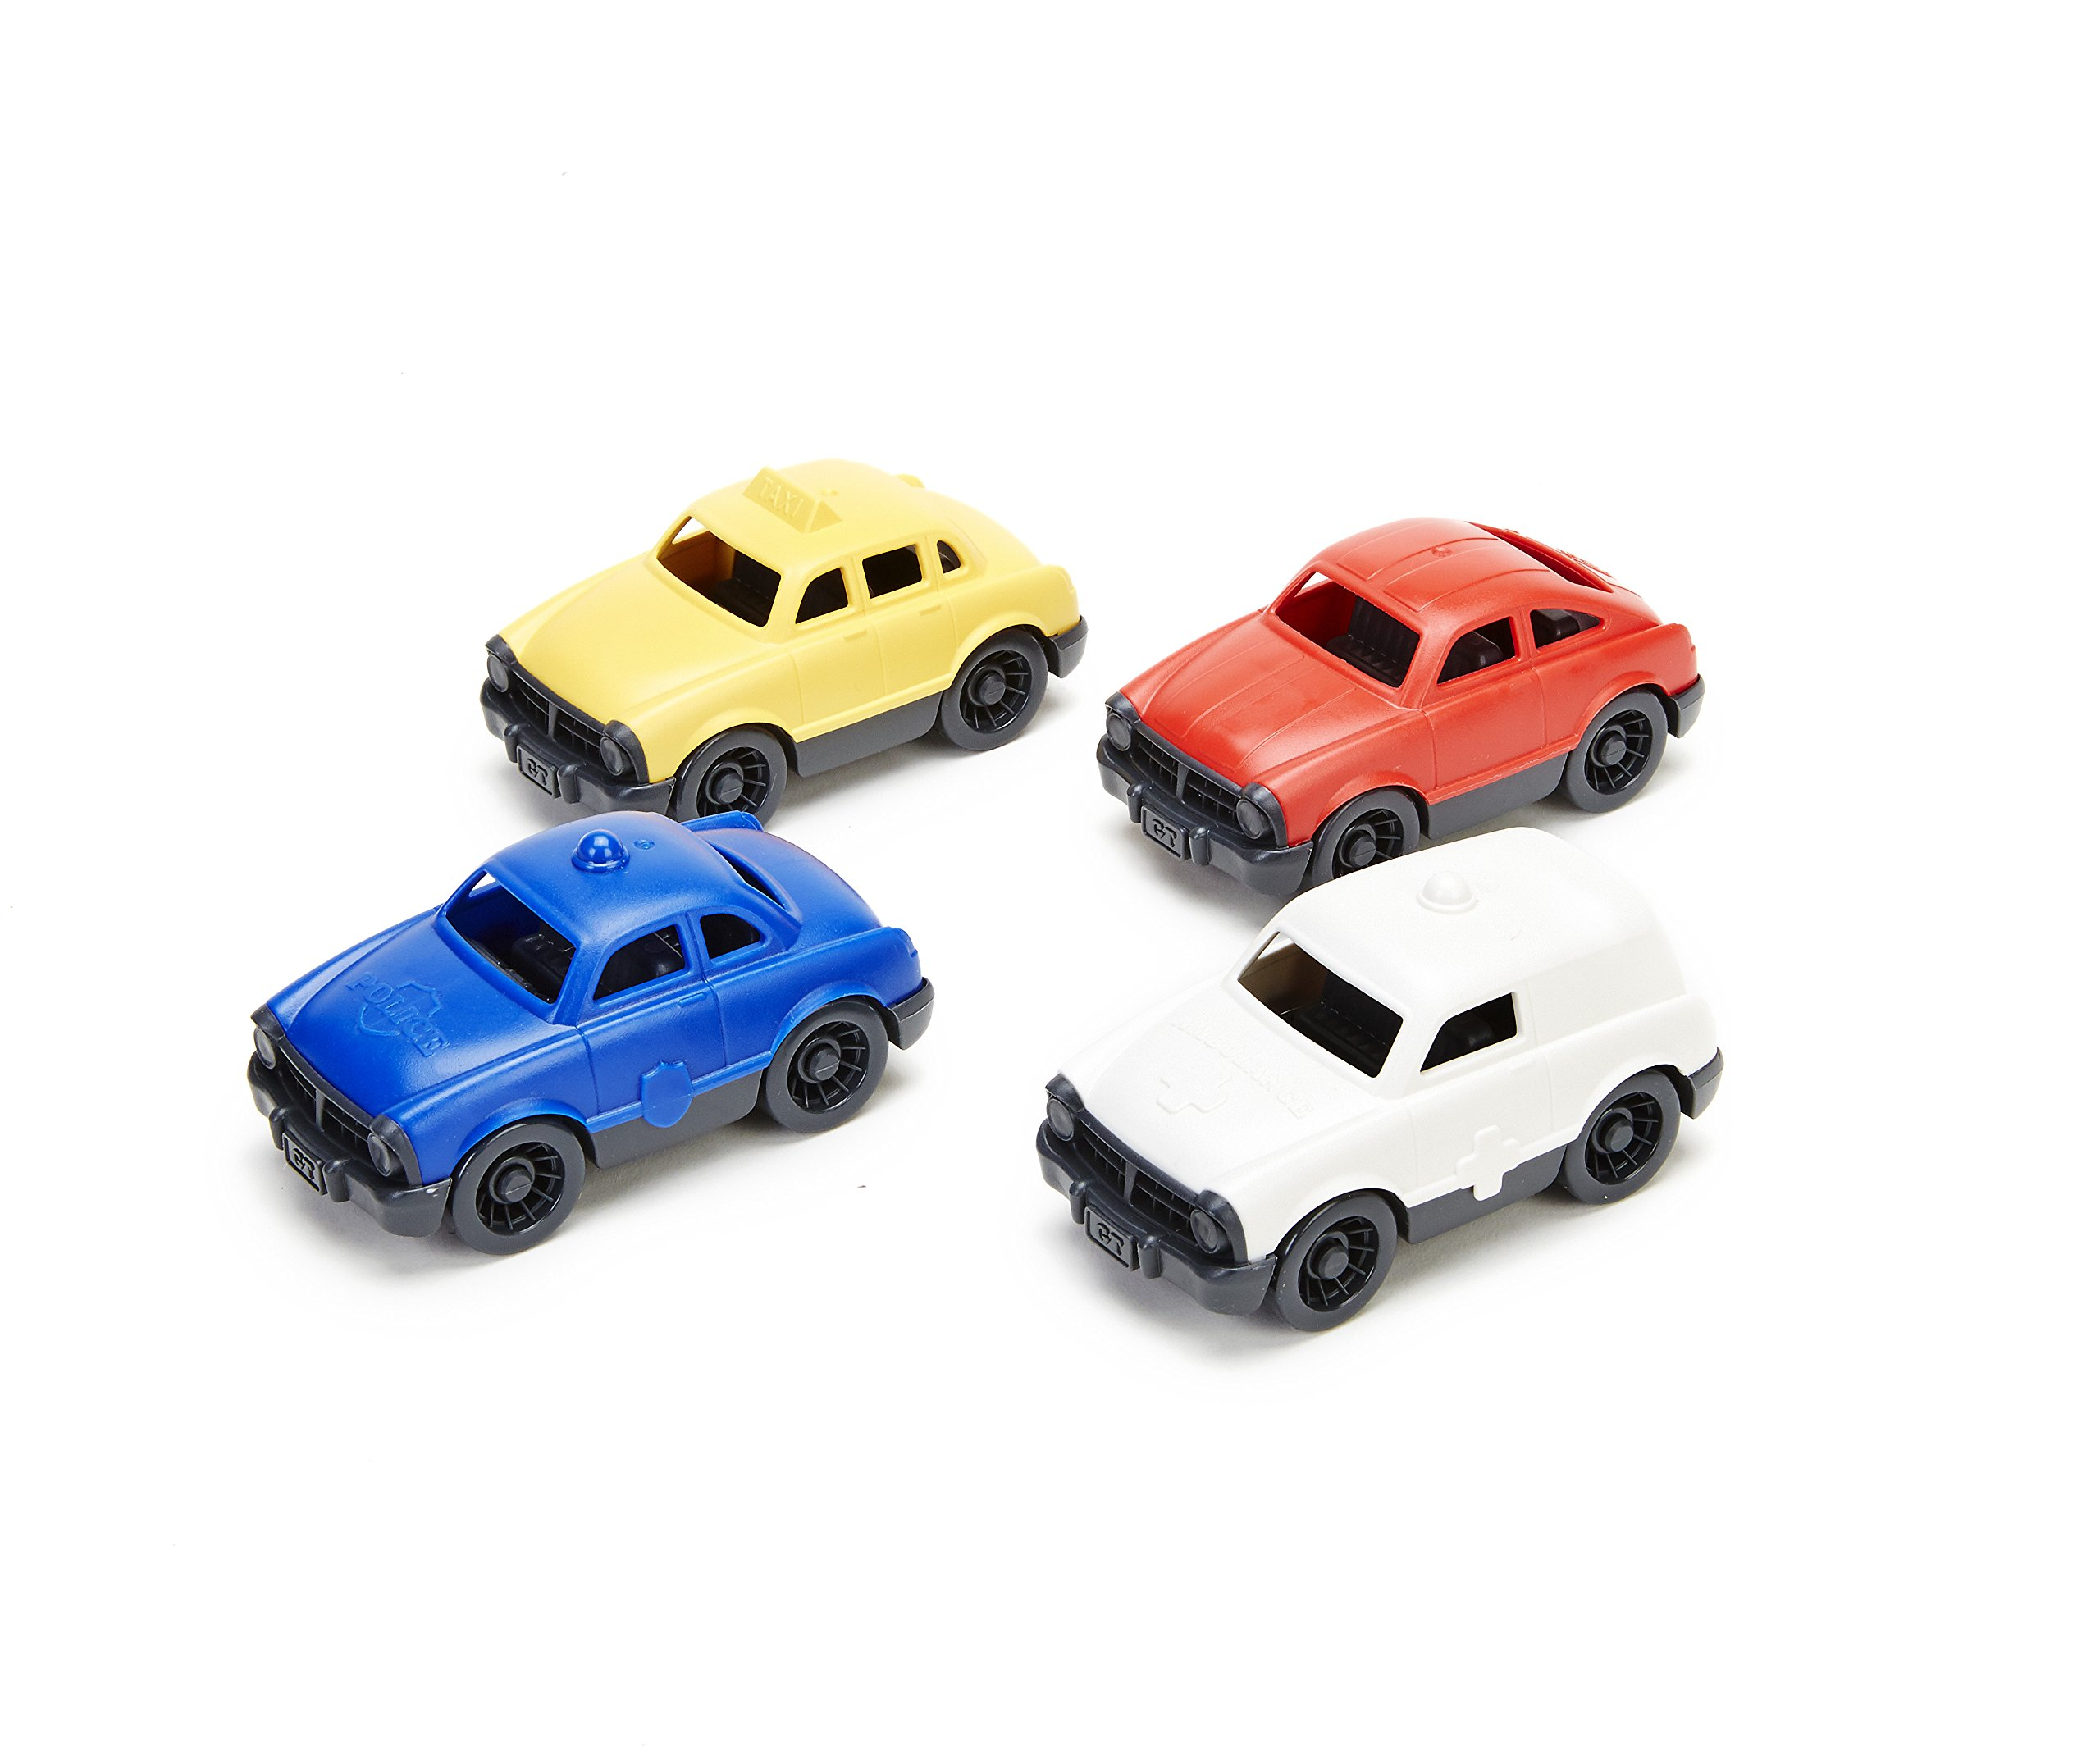 Green Toys Mvp1-1165 Mini Vehicle 4-Pack 14